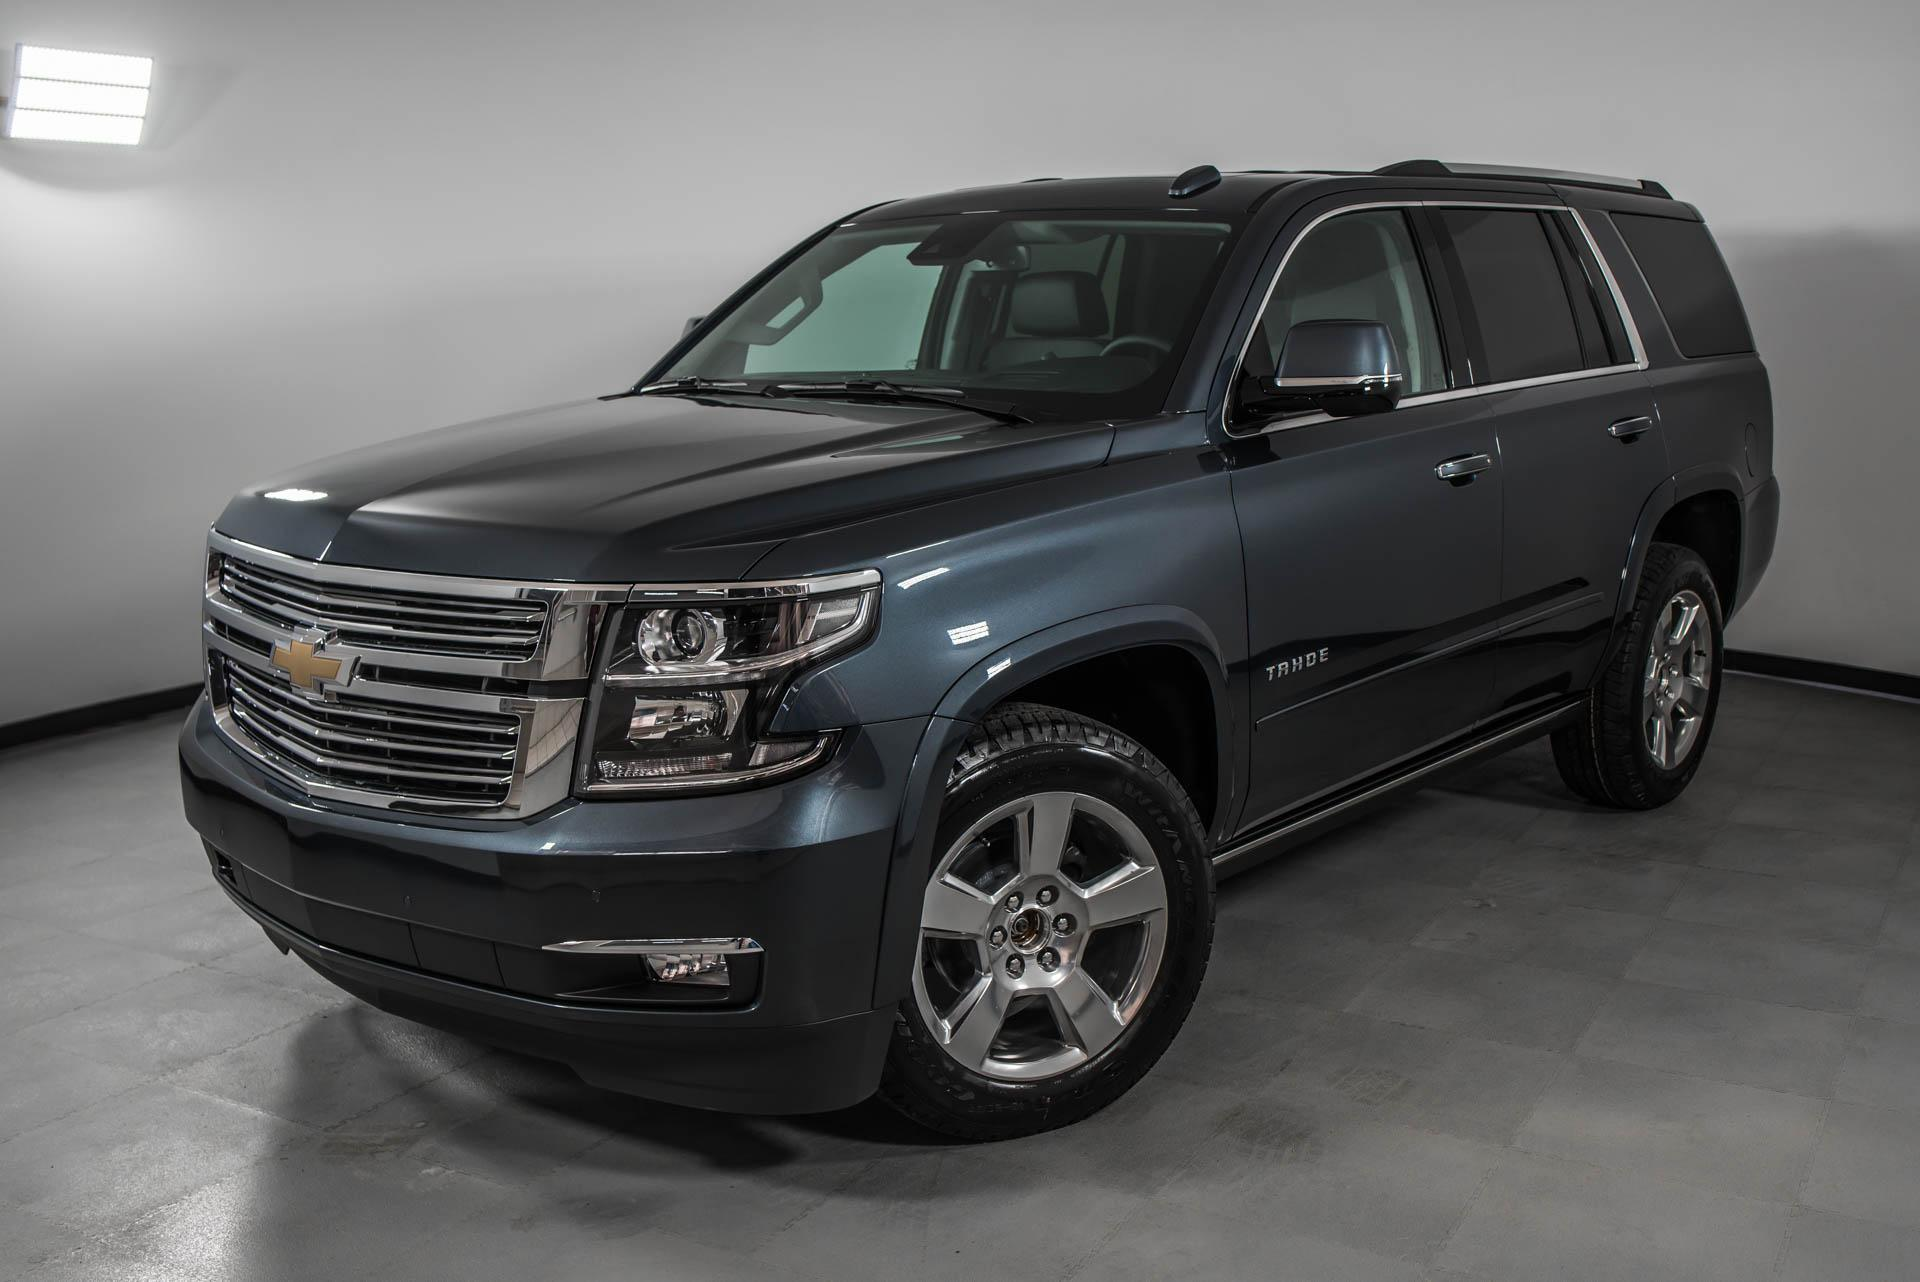 Chevrolet Tahoe 6.2 AT 4WD (426 л.с.) Premier